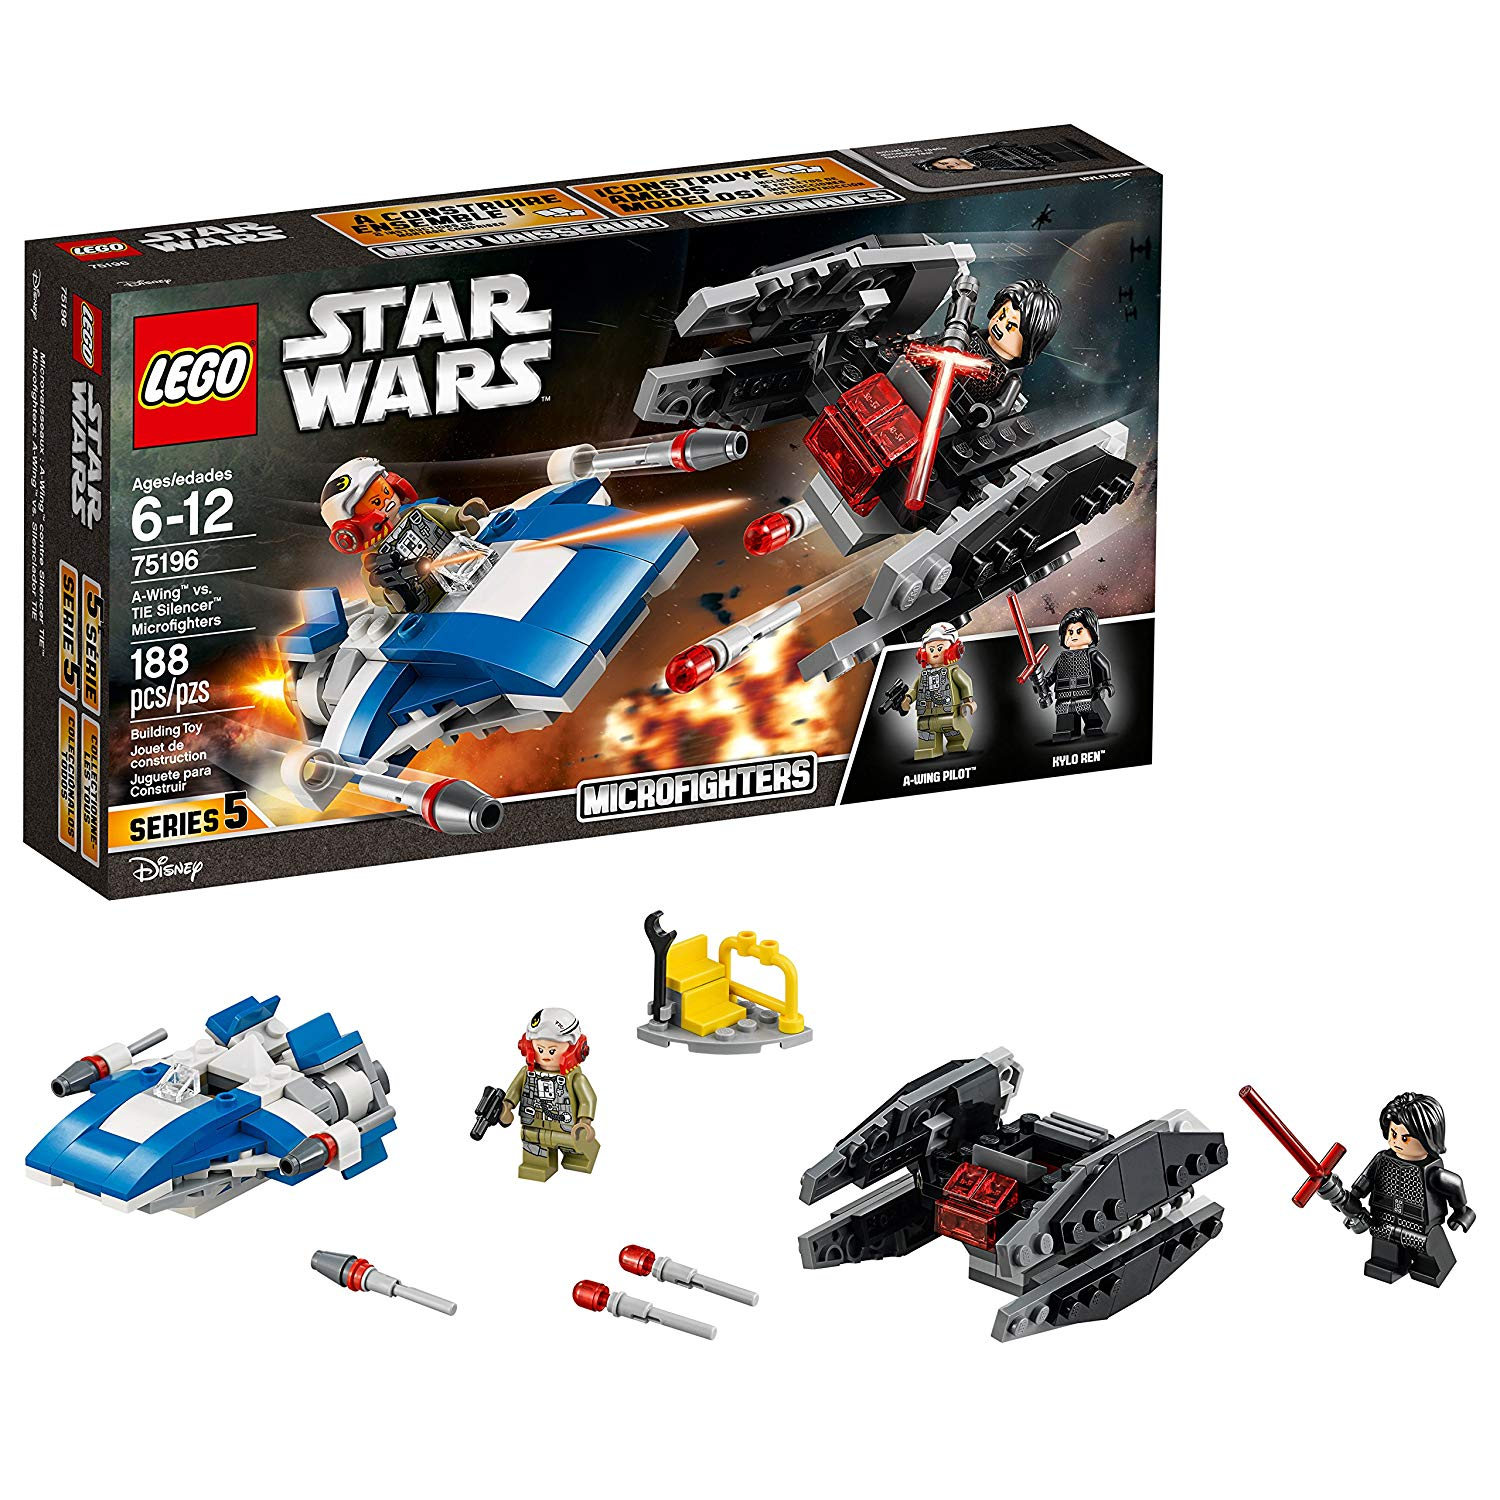 LEGO Star Wars: The Last Jedi A-Wing vs. TIE Silencer Microfighters Building Kit (75196) $11.99 @ Amazon / Walmart